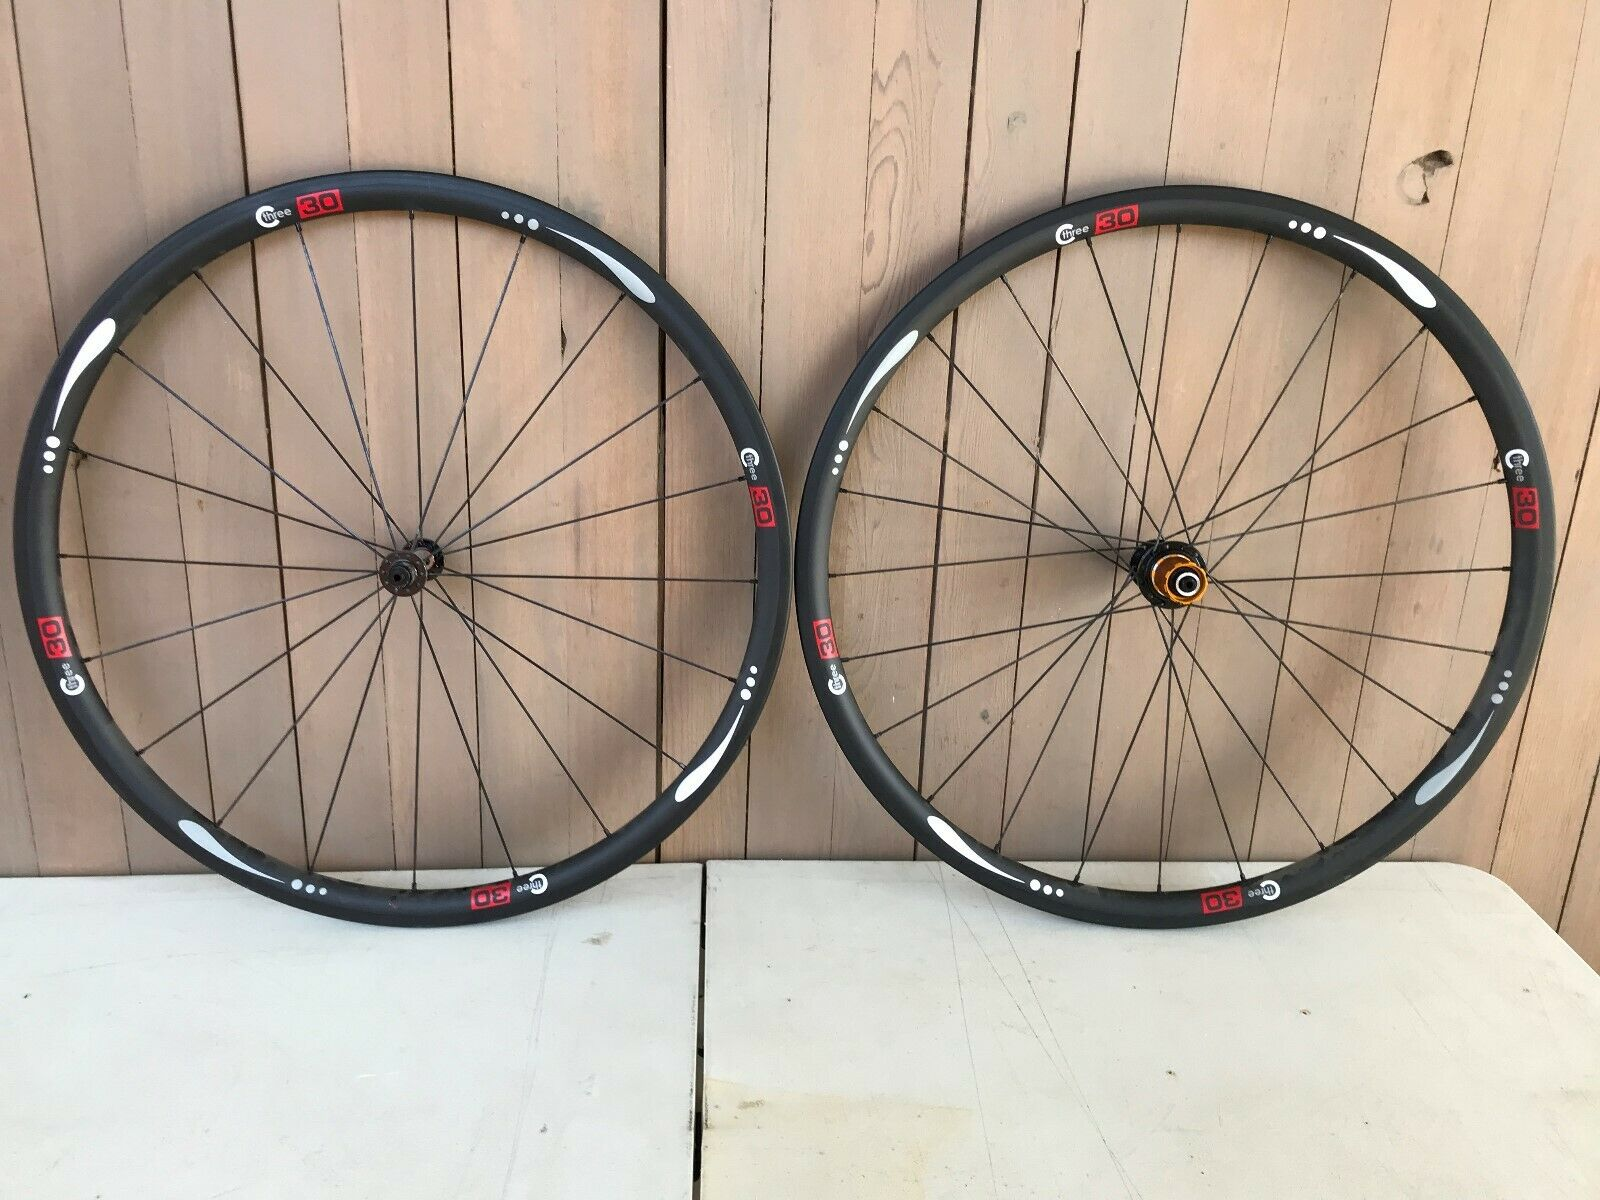 BRAND NEW 30mm x 27mm Carbon Clincher Wheelset, 10 11spd Shimano SRAM, 1424gms